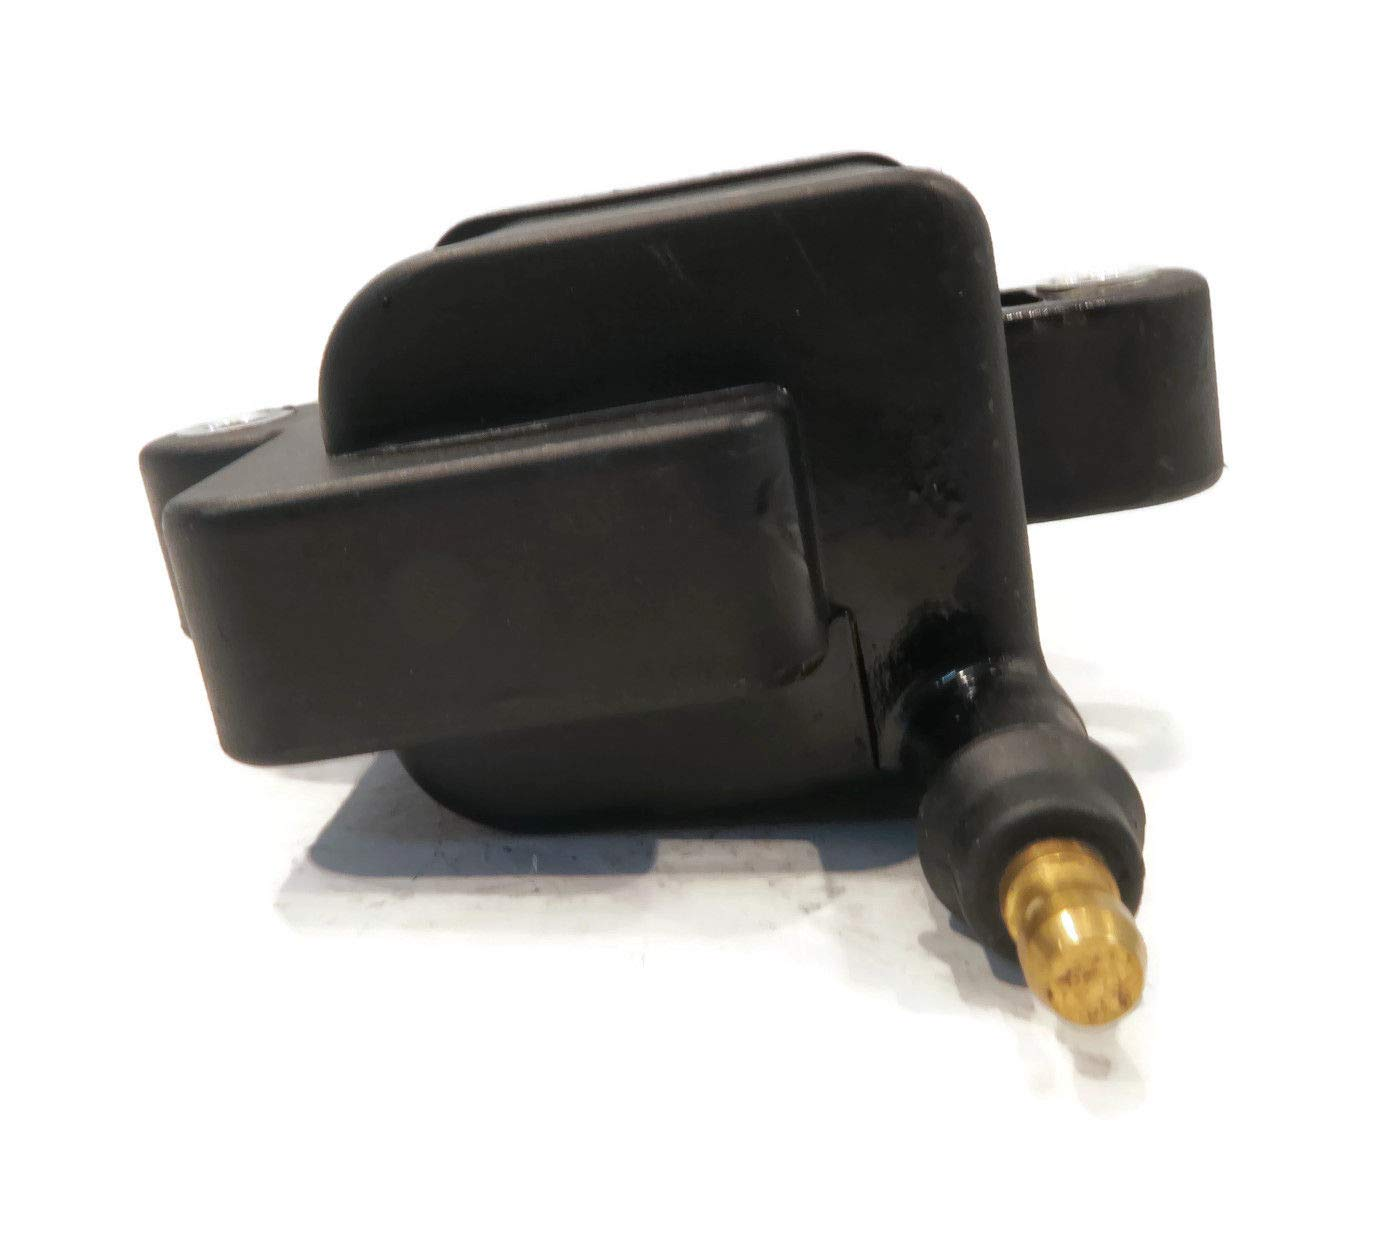 The ROP Shop Ignition Coil fits Mercury 2007 2008 2009 2010 2011 200HP 225HP L Optimax Pro XS